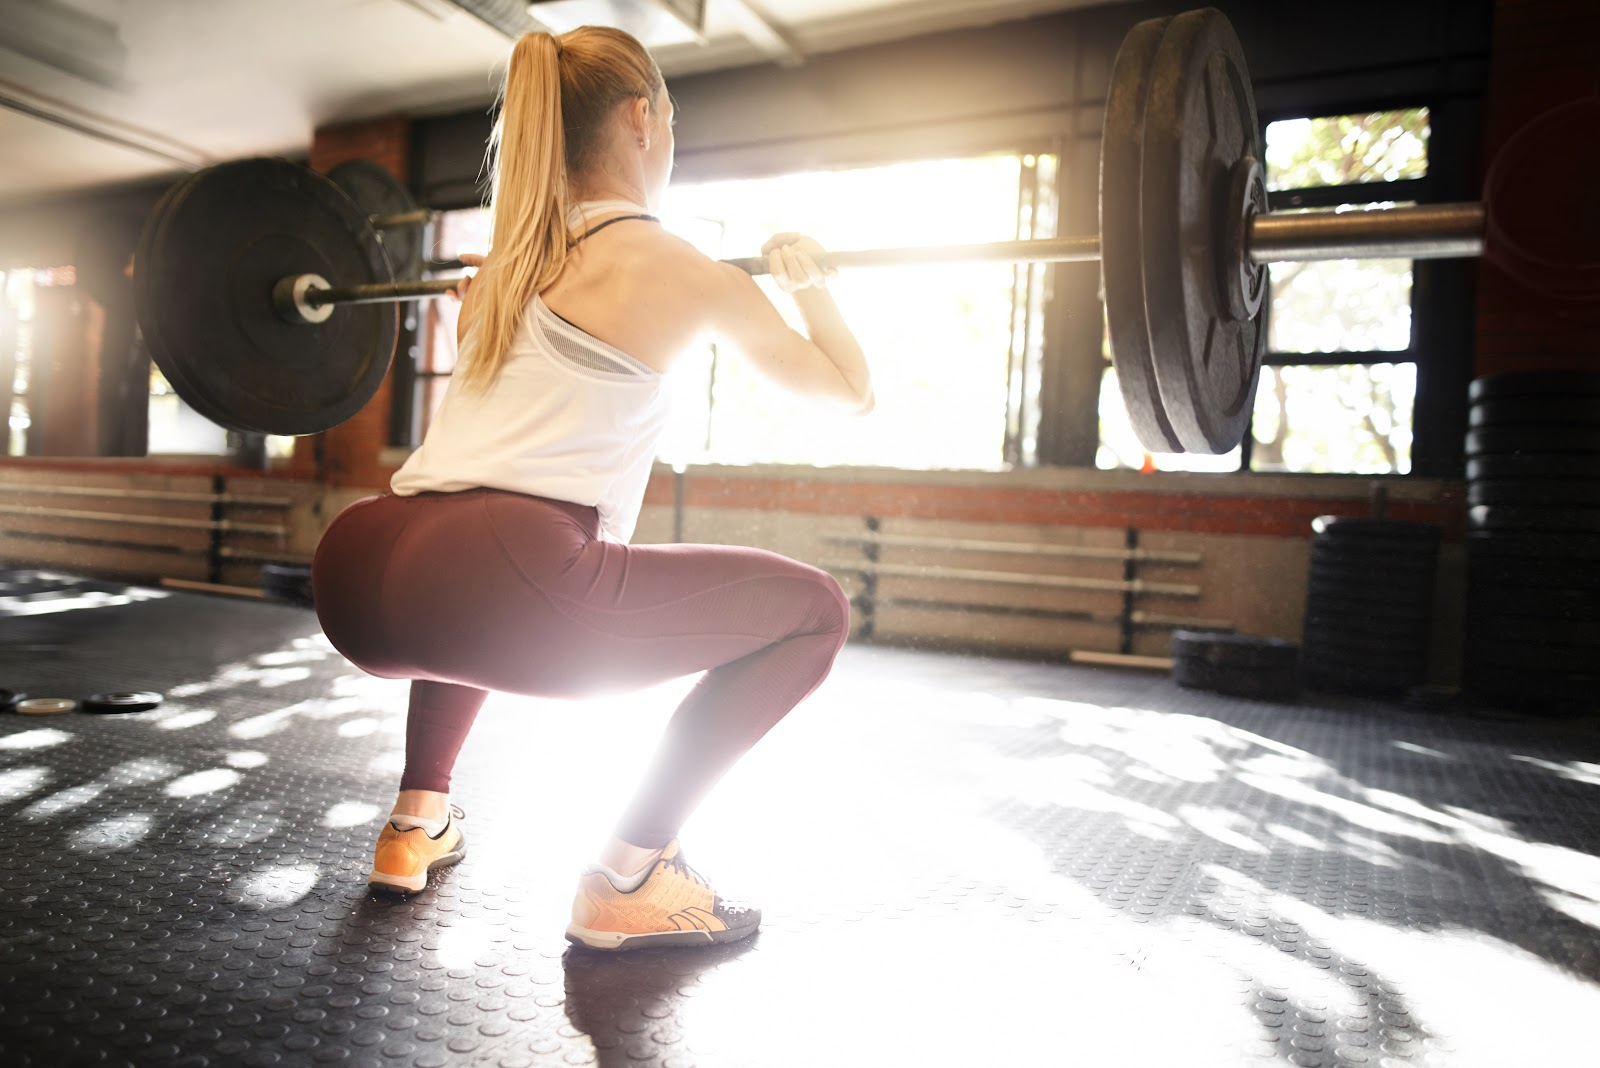 Strengthen glutes is important for injury prevention